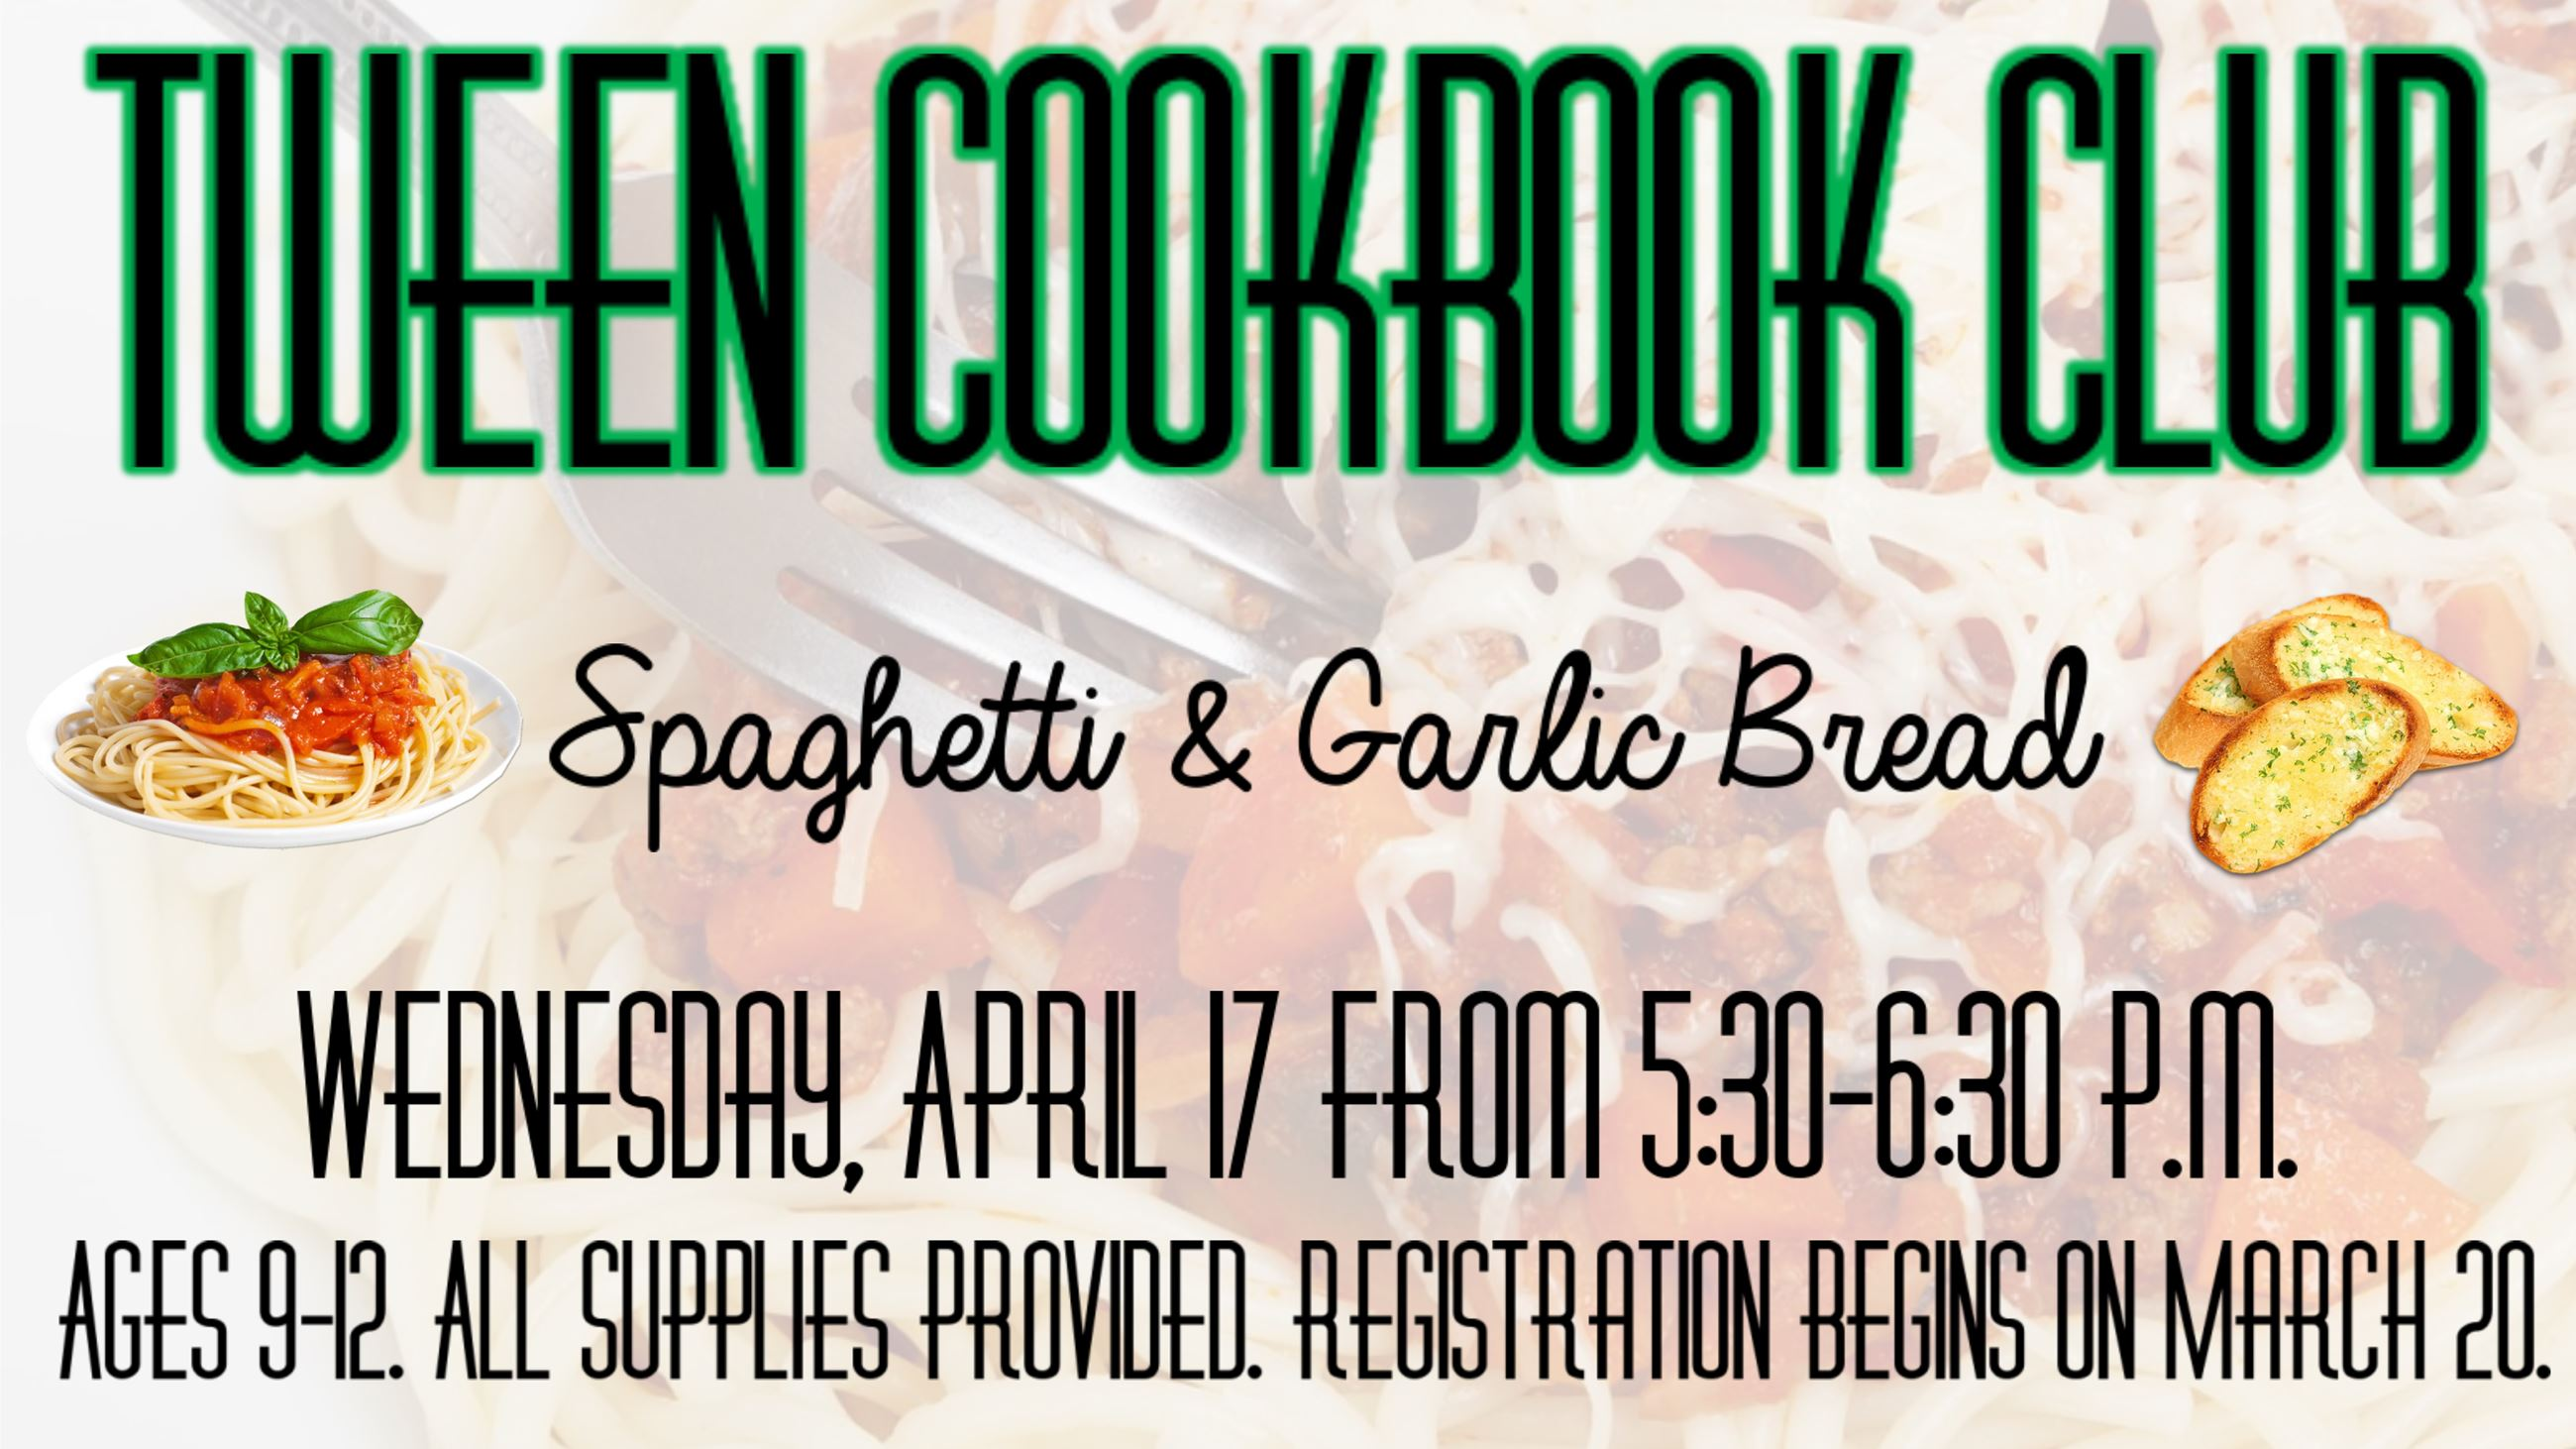 Tween Cookbook Club spaghetti and garlic bread. April 17 from 5:30 to 6:30 p.m. Ages 9 to 12. Regist